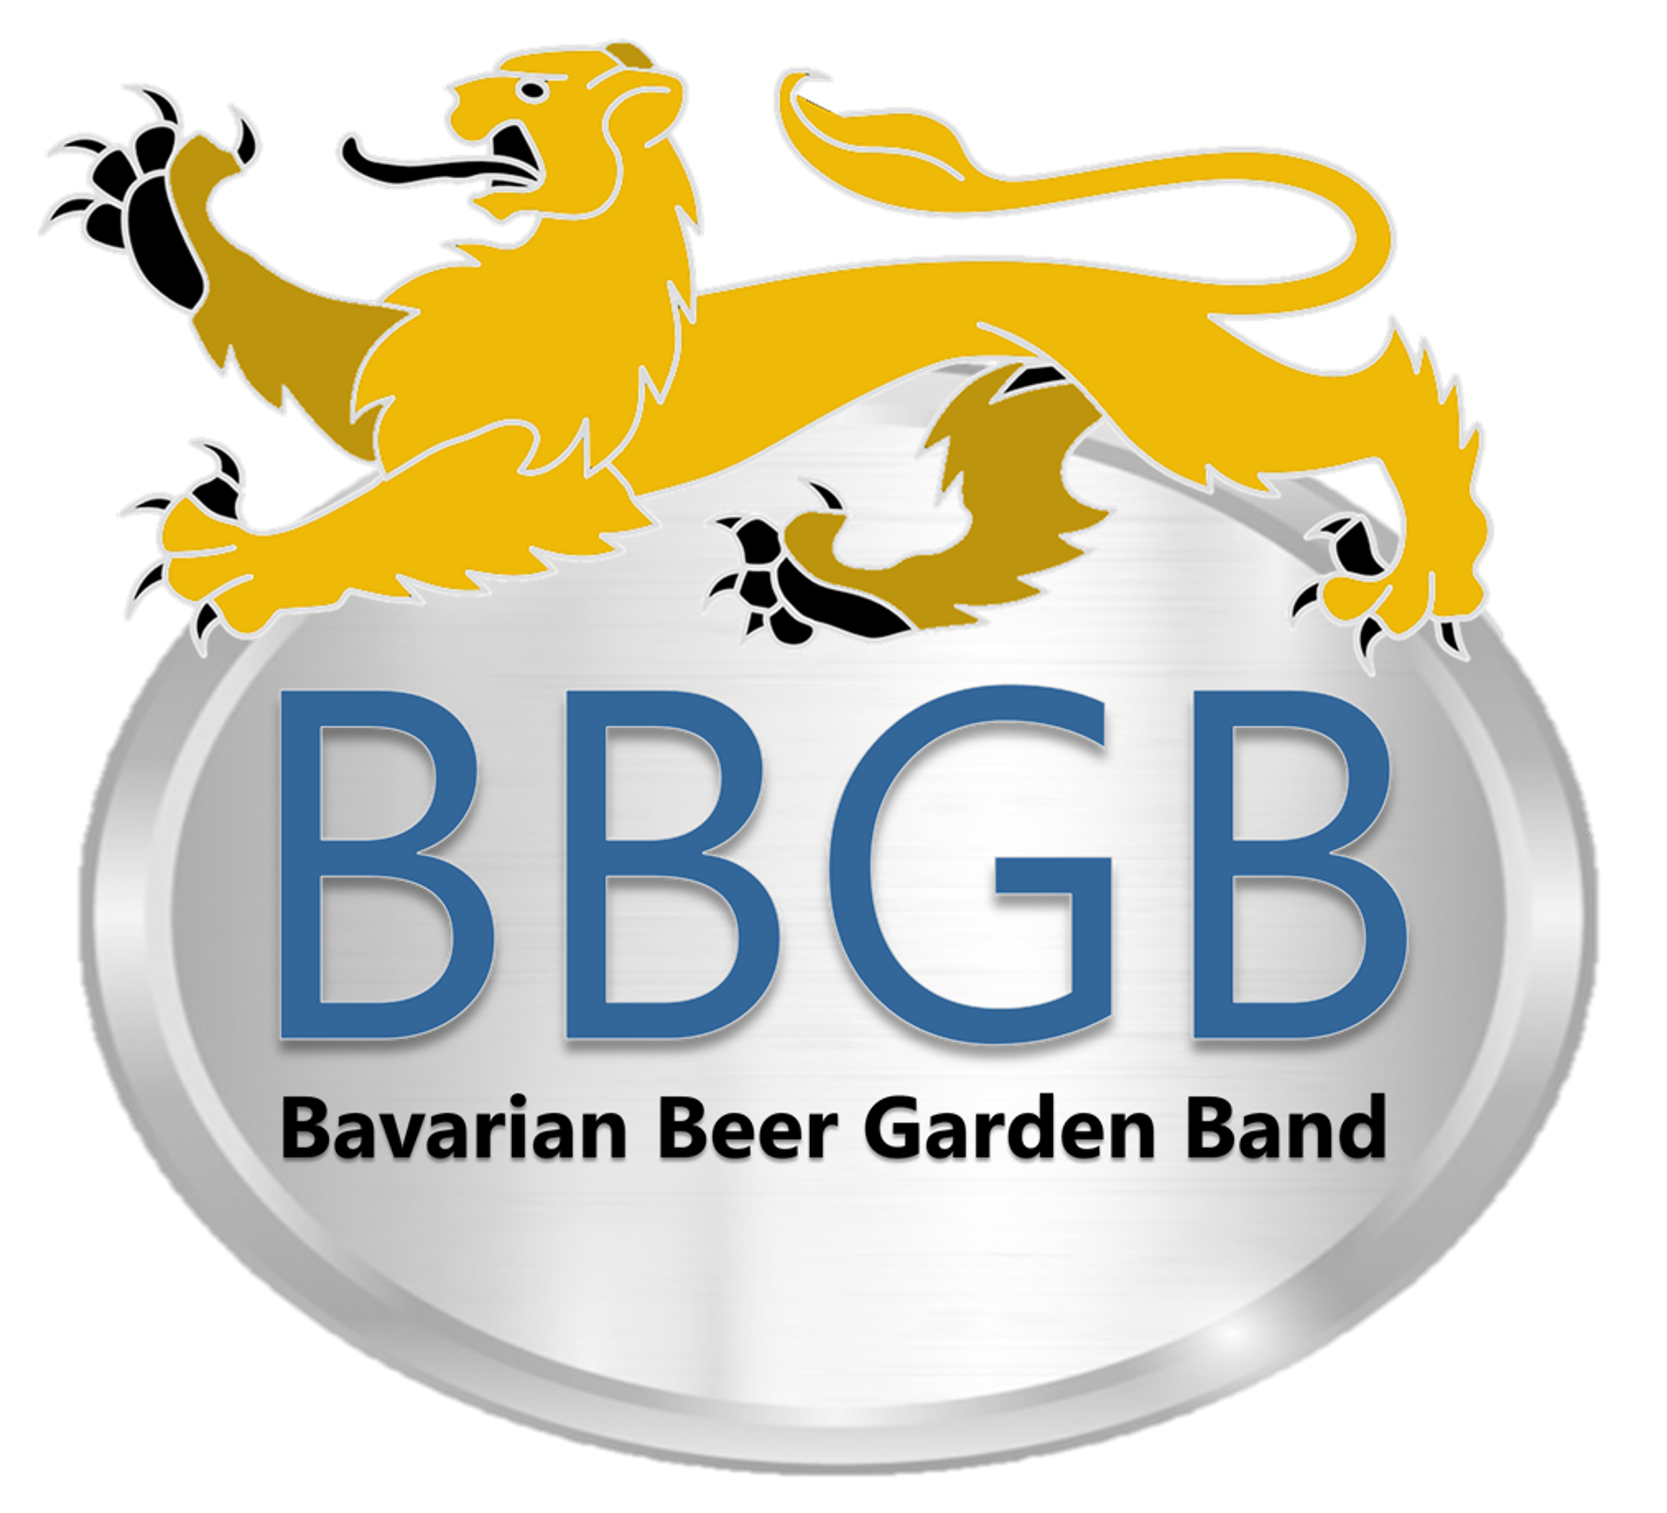 Bavarian Beer Garden Band